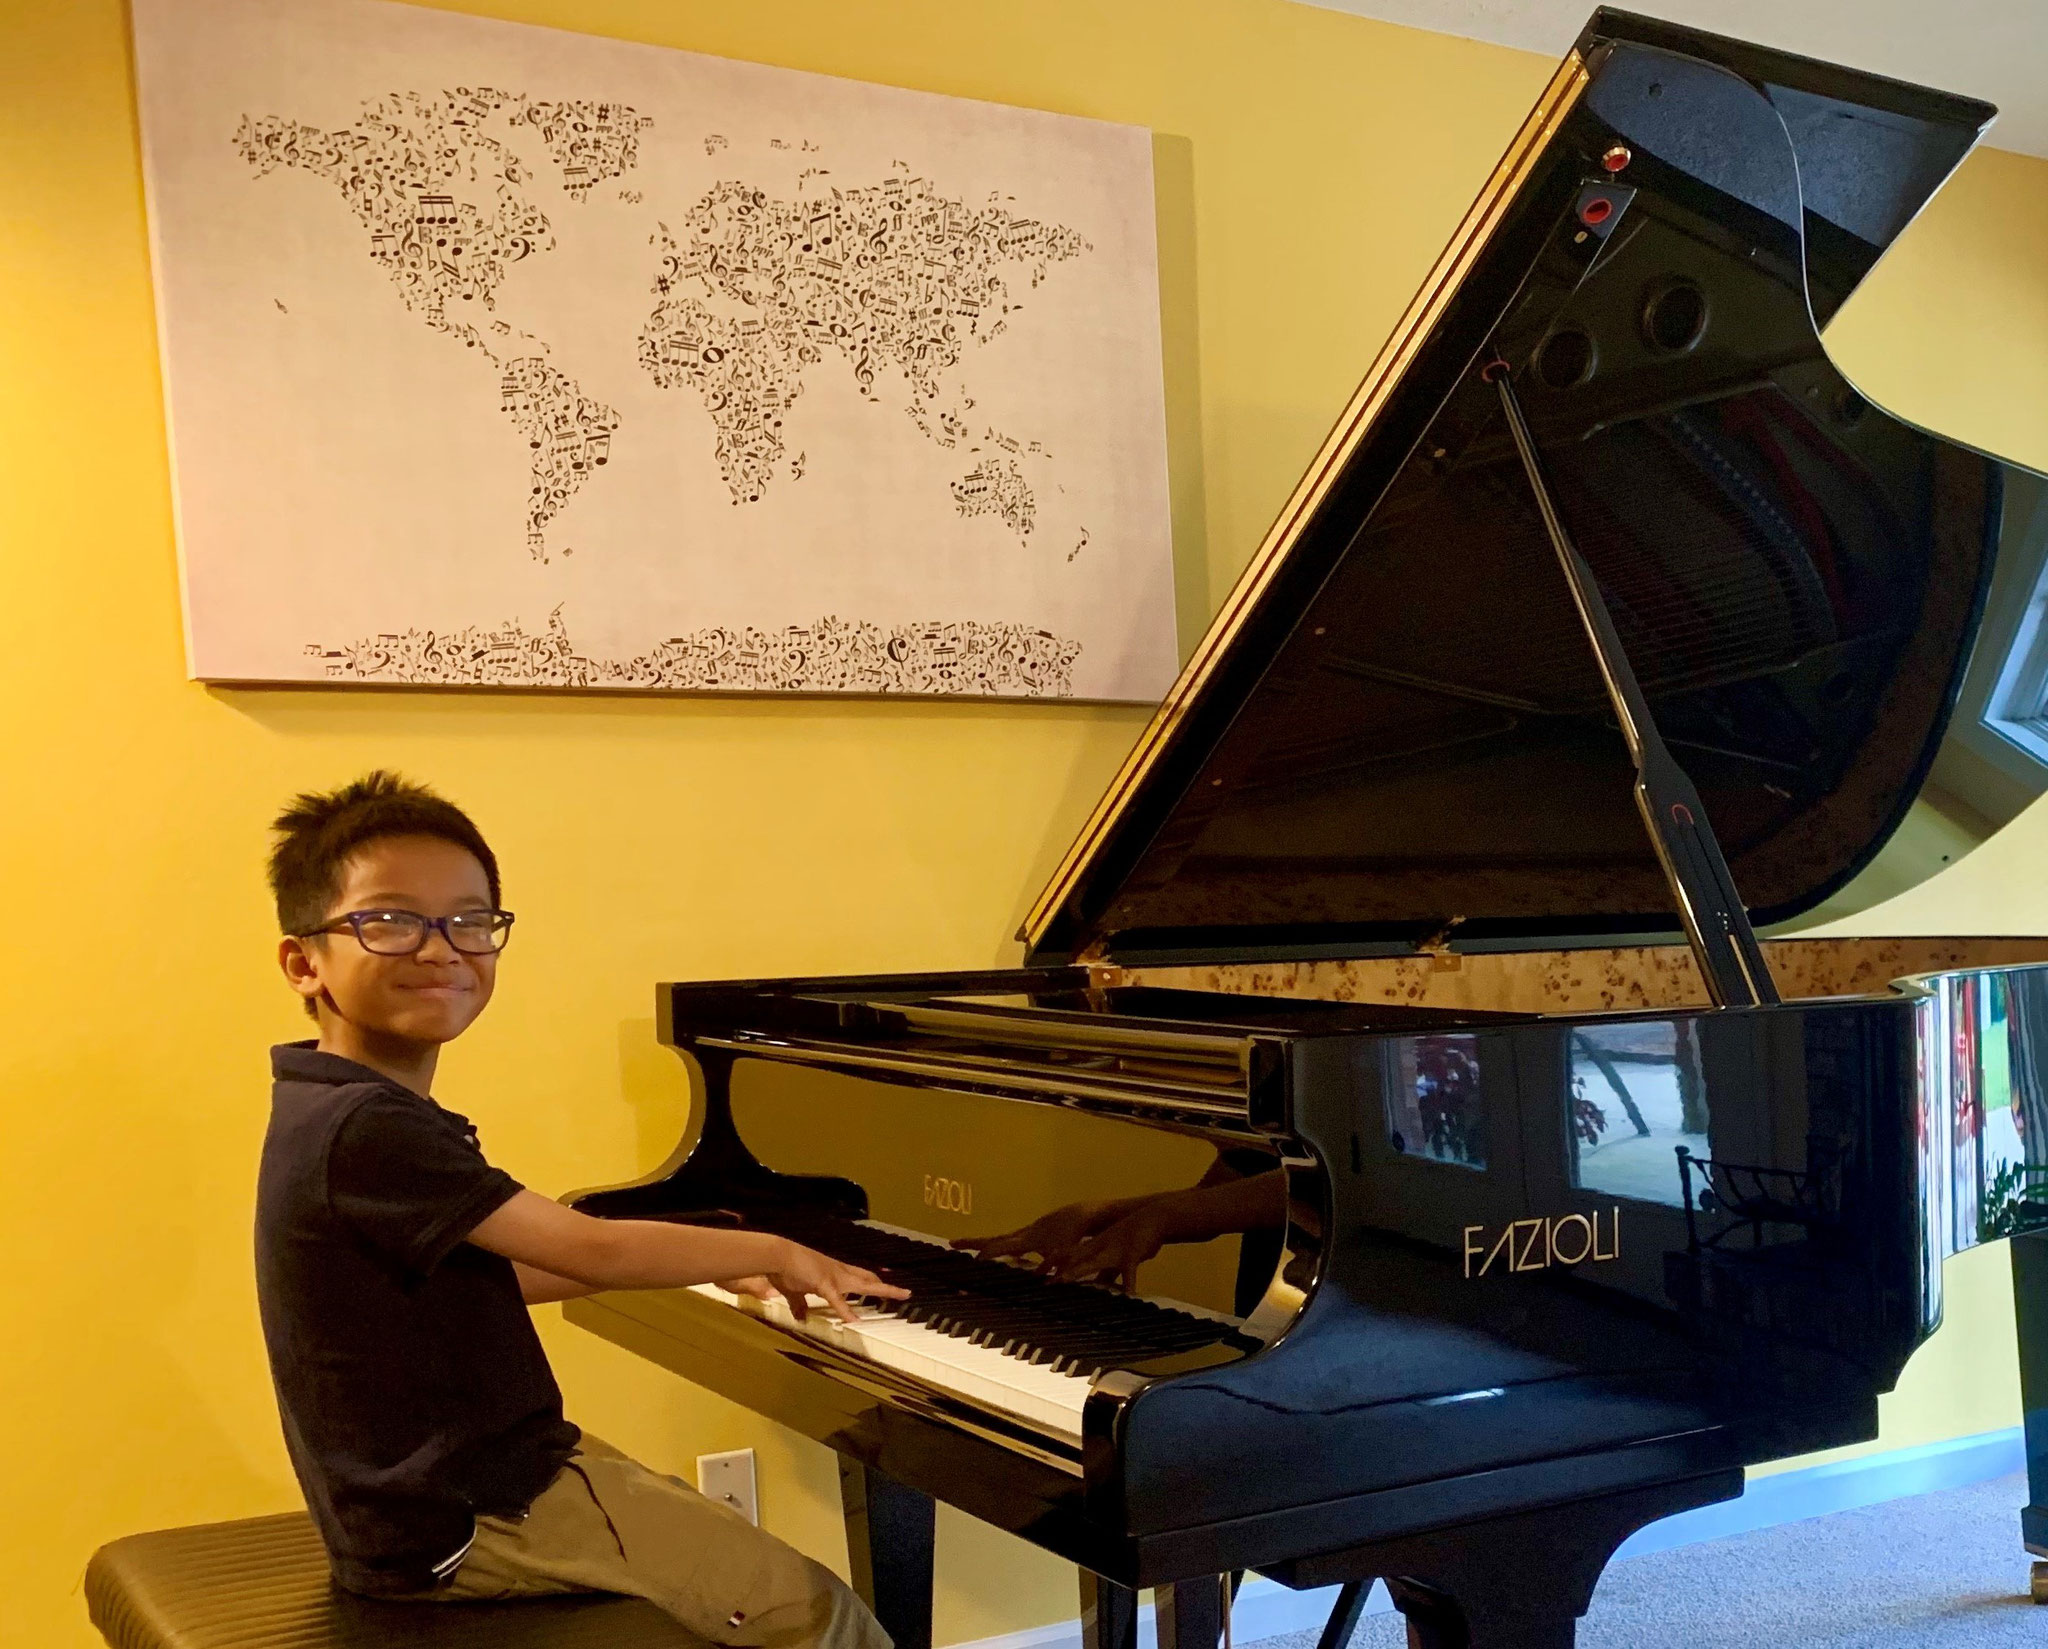 """BACH NGUYEN (8 y.o.) SELECTED AS A WINNER OF """"KIDS COMPOSE COMPETITION 2019 AT THE INDIANA UNIVERSITY JACOBS SCHOOL OF MUSIC""""!"""